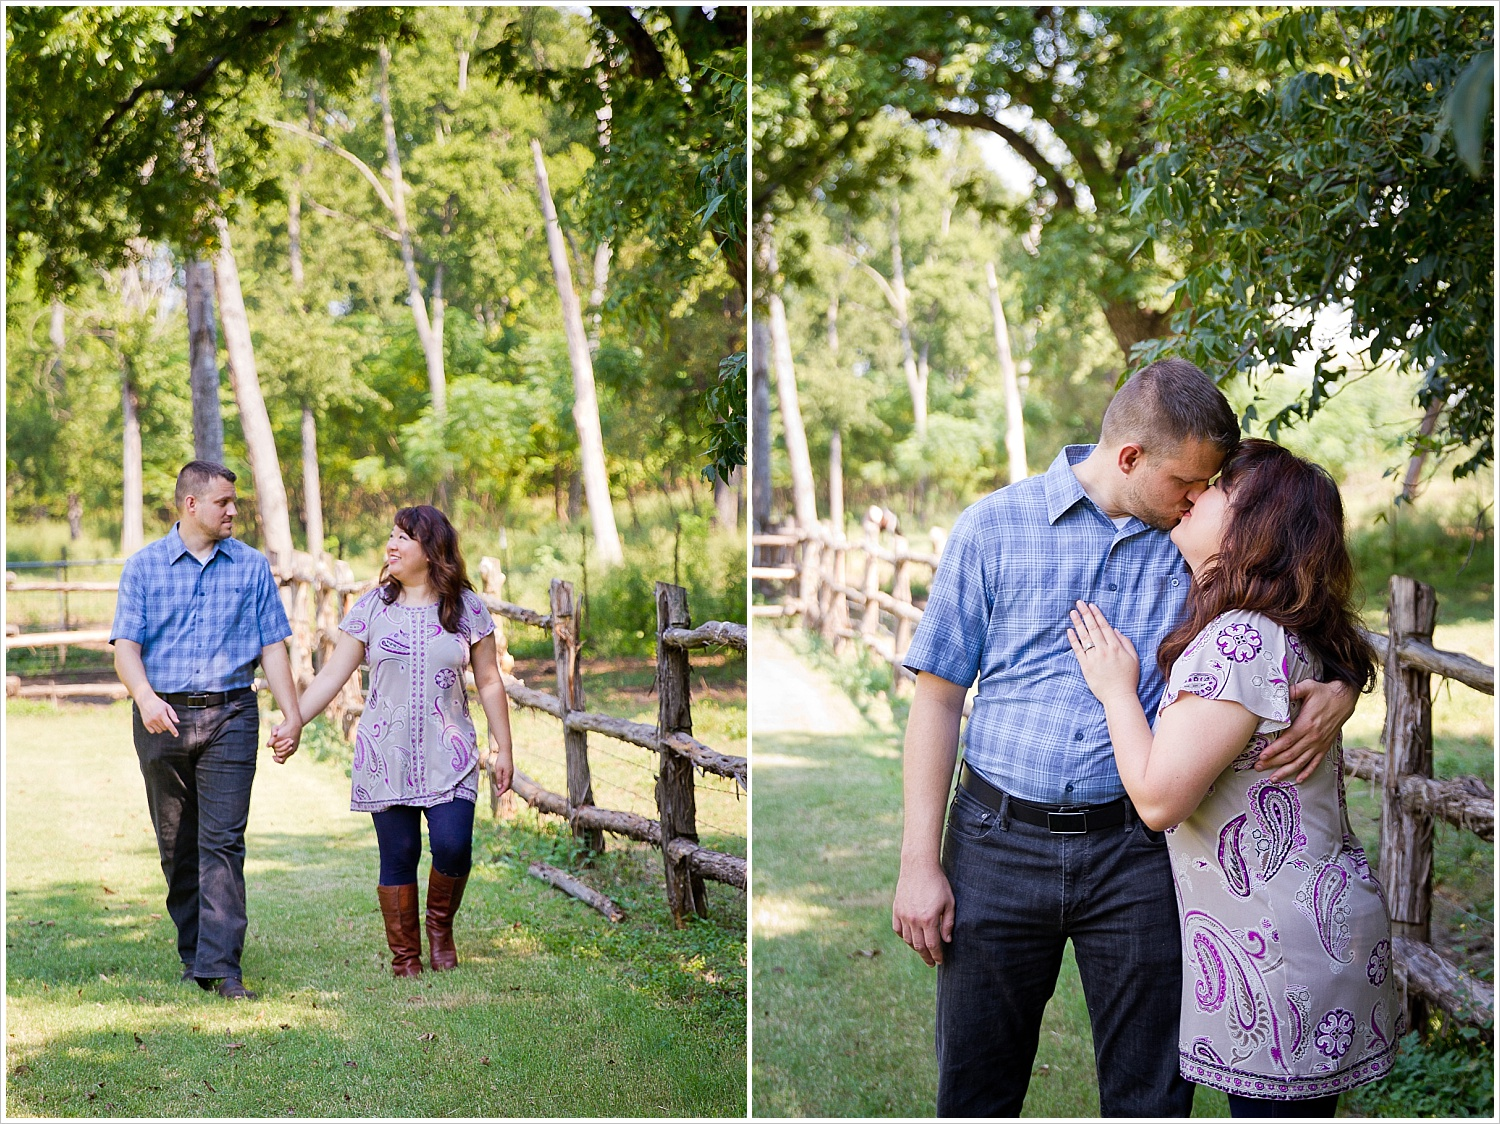 A couple walks hand-in-hand during their engagement portraits at Brazos Bluffs Ranch in Waco, Texas - Jason & Melaina Photography, www.jasonandmelaina.com